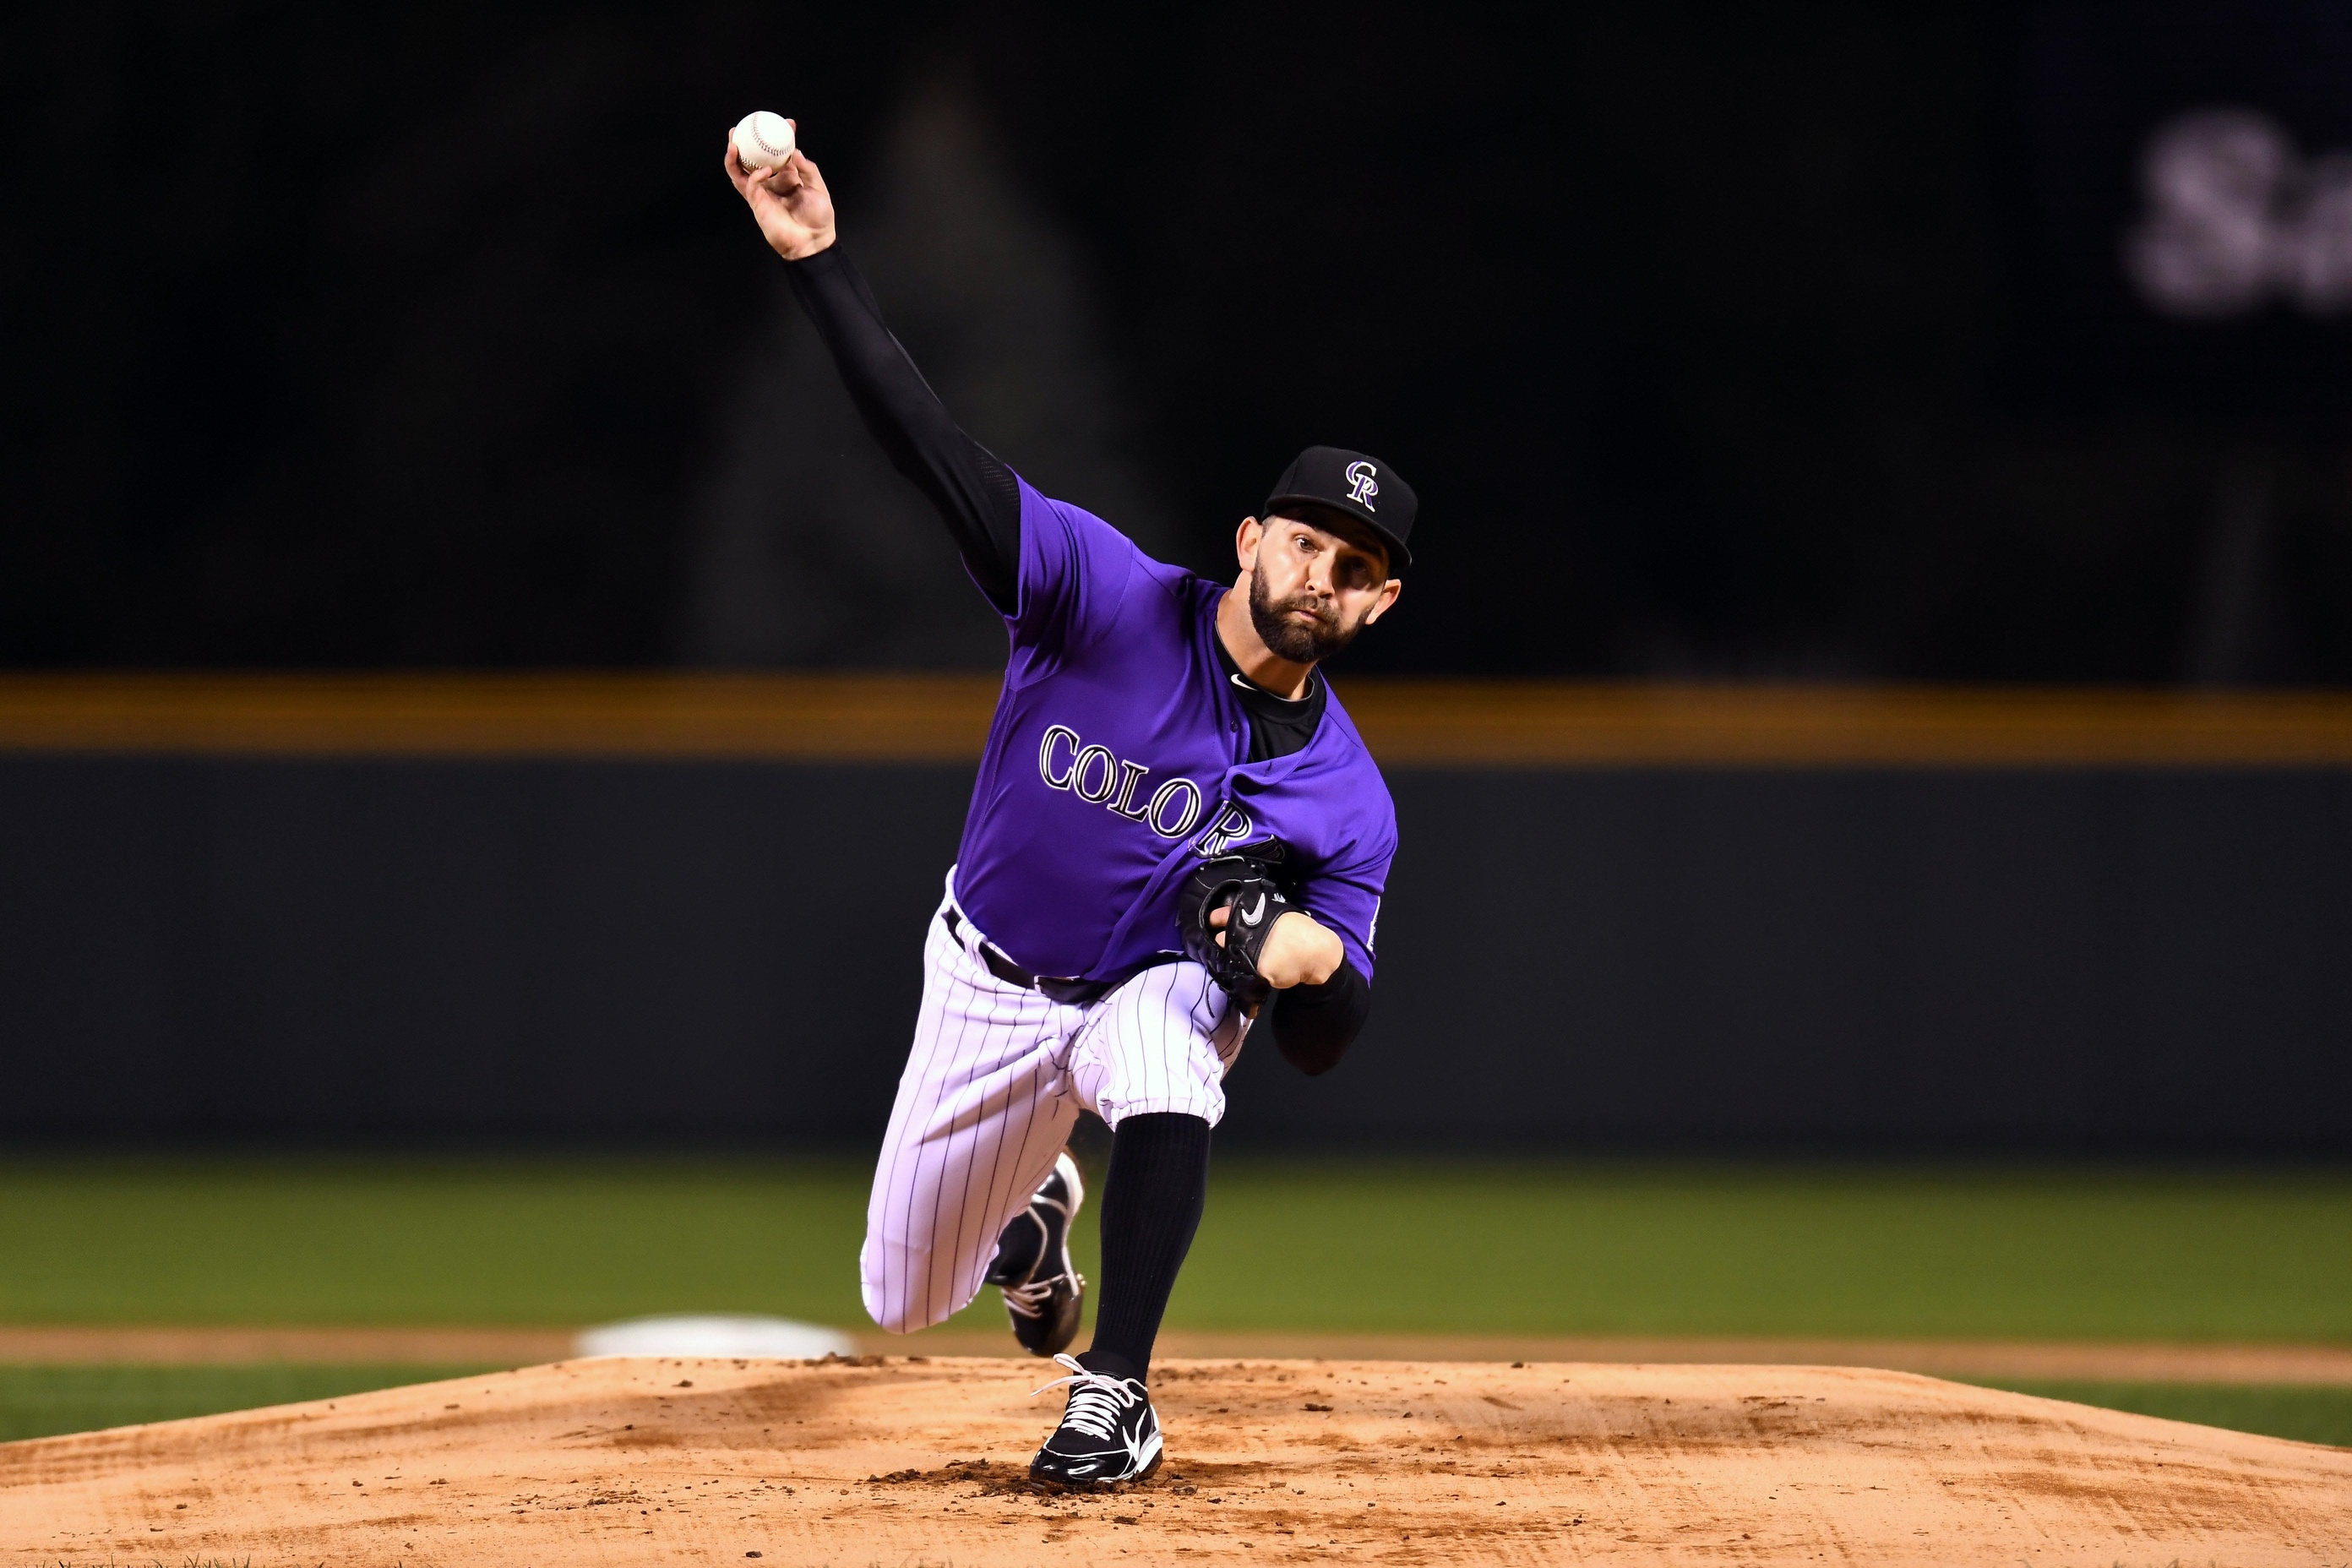 Cubs sign starting pitcher Tyler Chatwood to 3-year deal